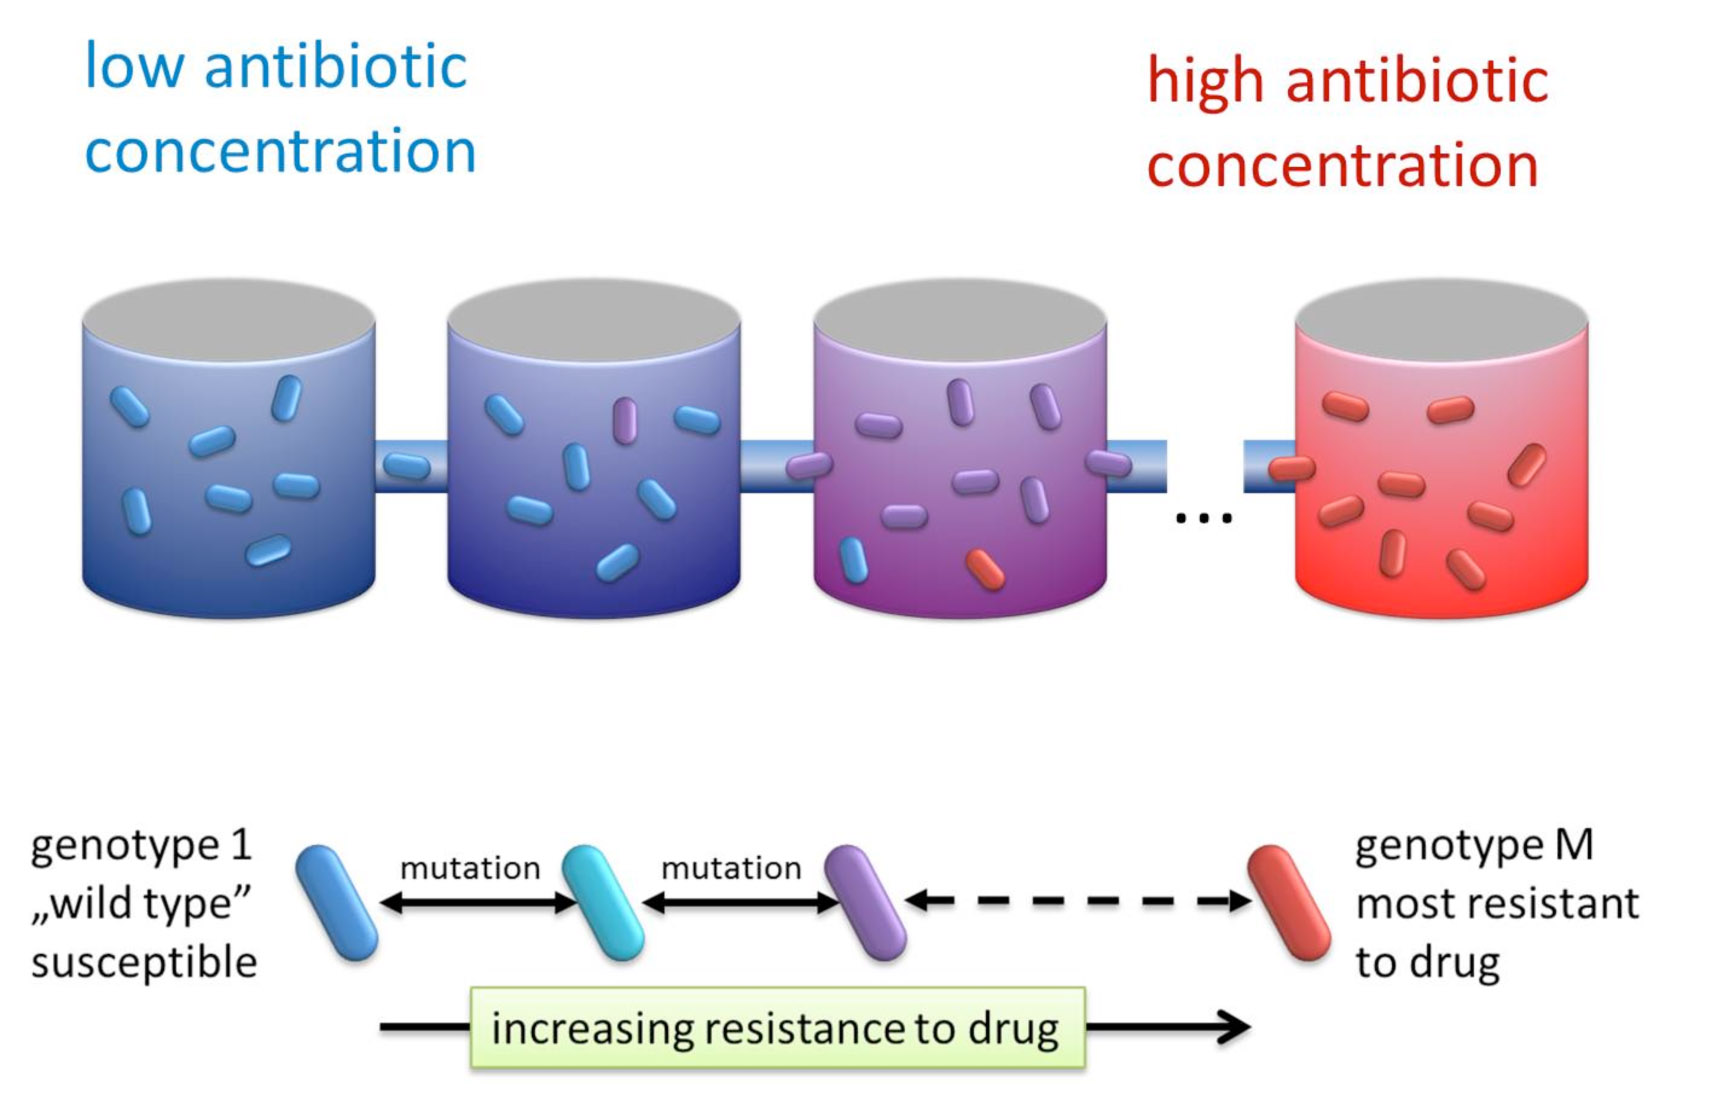 "The bacteria grow in a series of connected microenvironments, and the antibiotic concentration increases from left to right. The bacteria can mutate, from a ""wild type"" which is susceptible to the antibiotic, through a spectrum of intermediate-resistant mutants, to the most-resistant mutant."